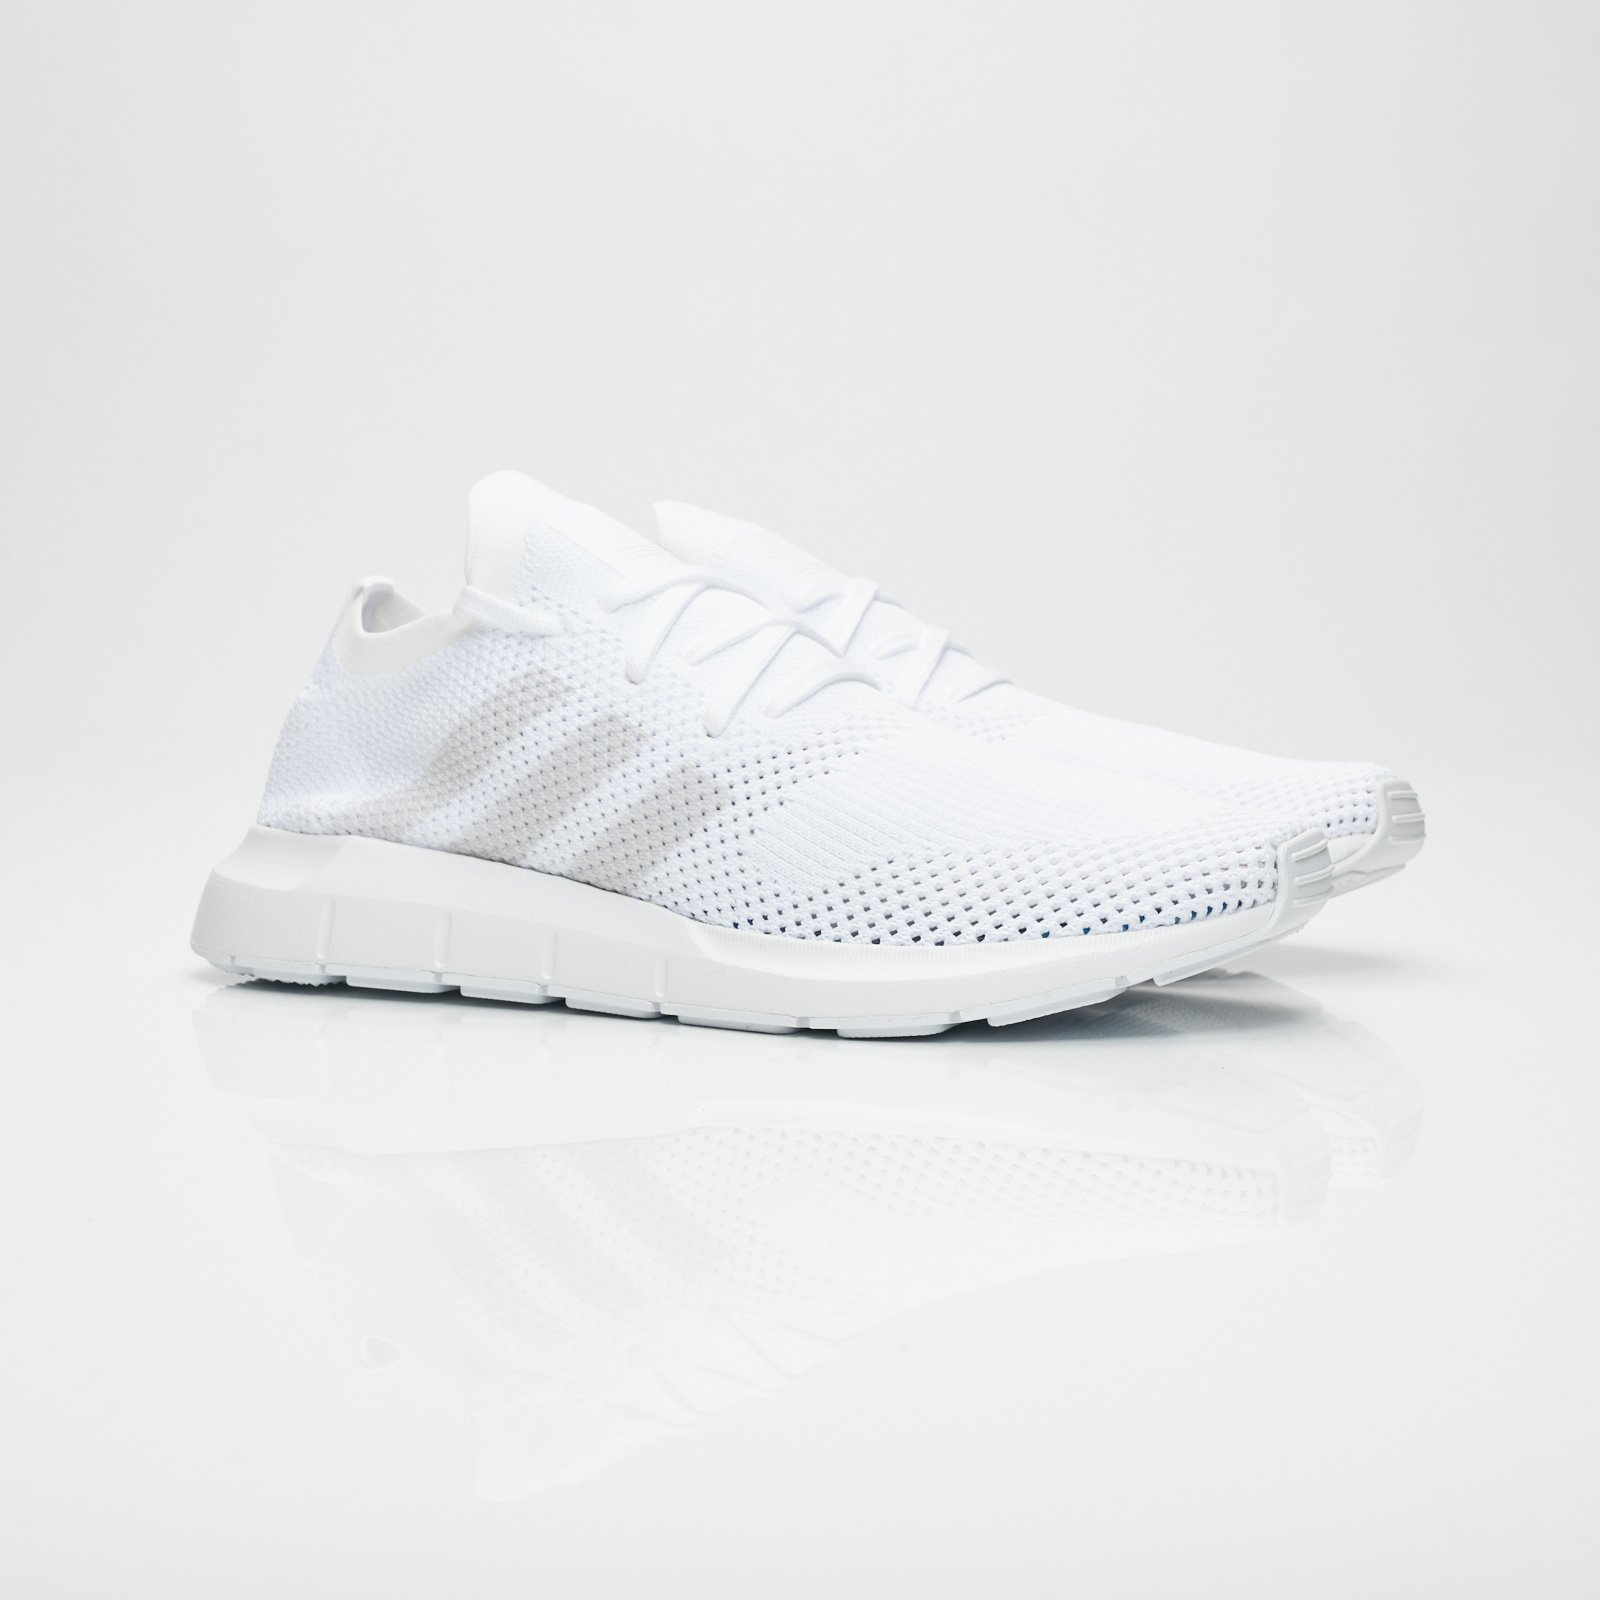 ac4563c92490f adidas Swift Run PK - Cq2892 - Sneakersnstuff